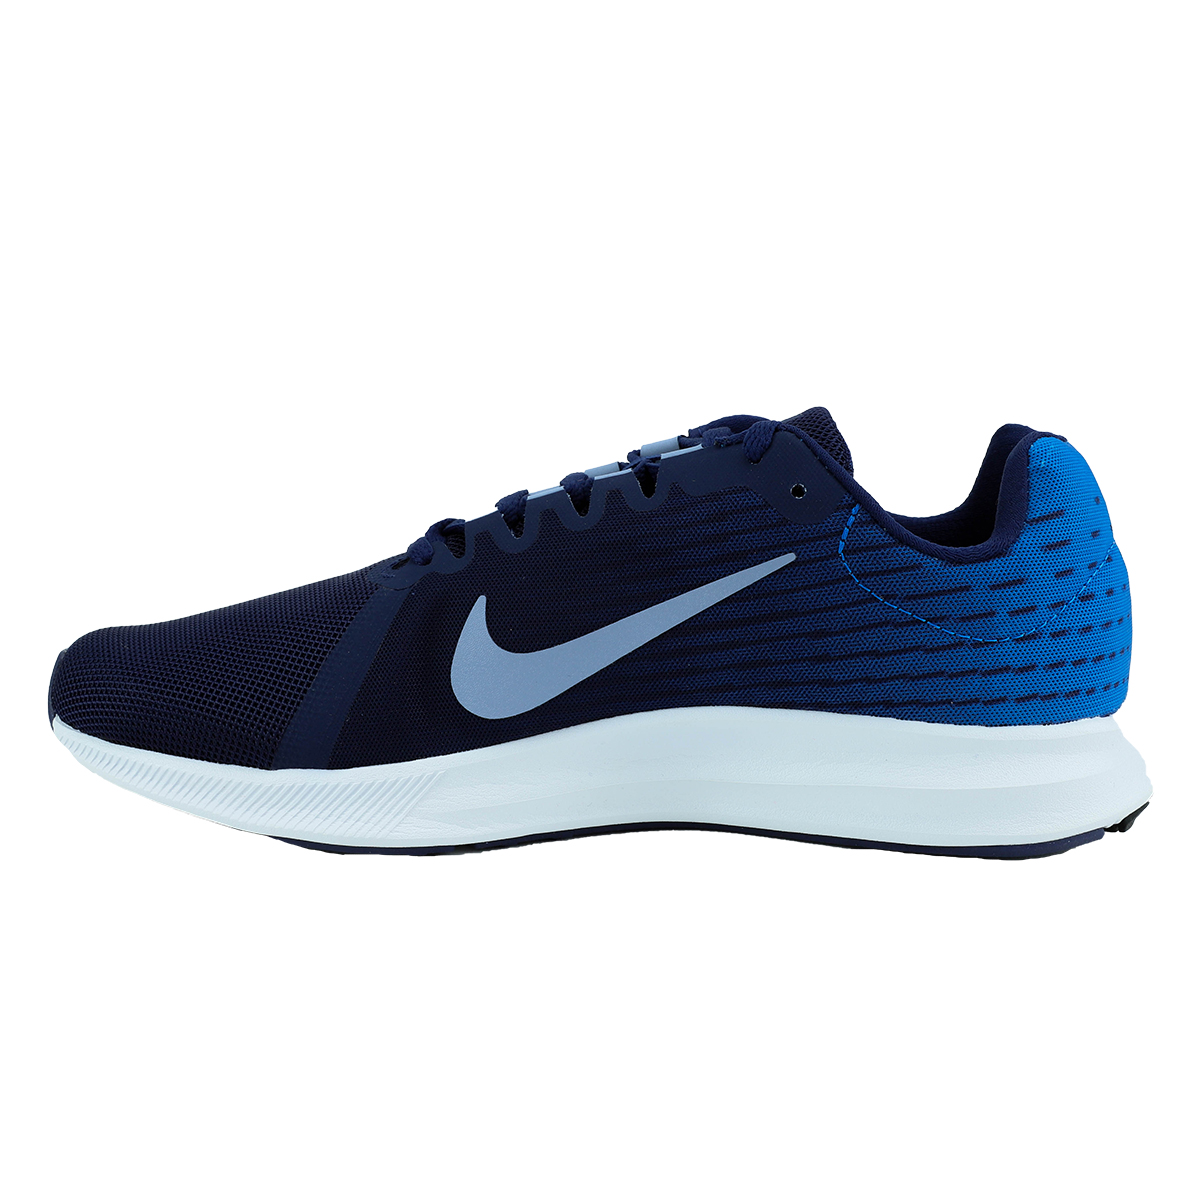 Nike-Men-039-s-Downshifter-8-Running-Shoes thumbnail 10